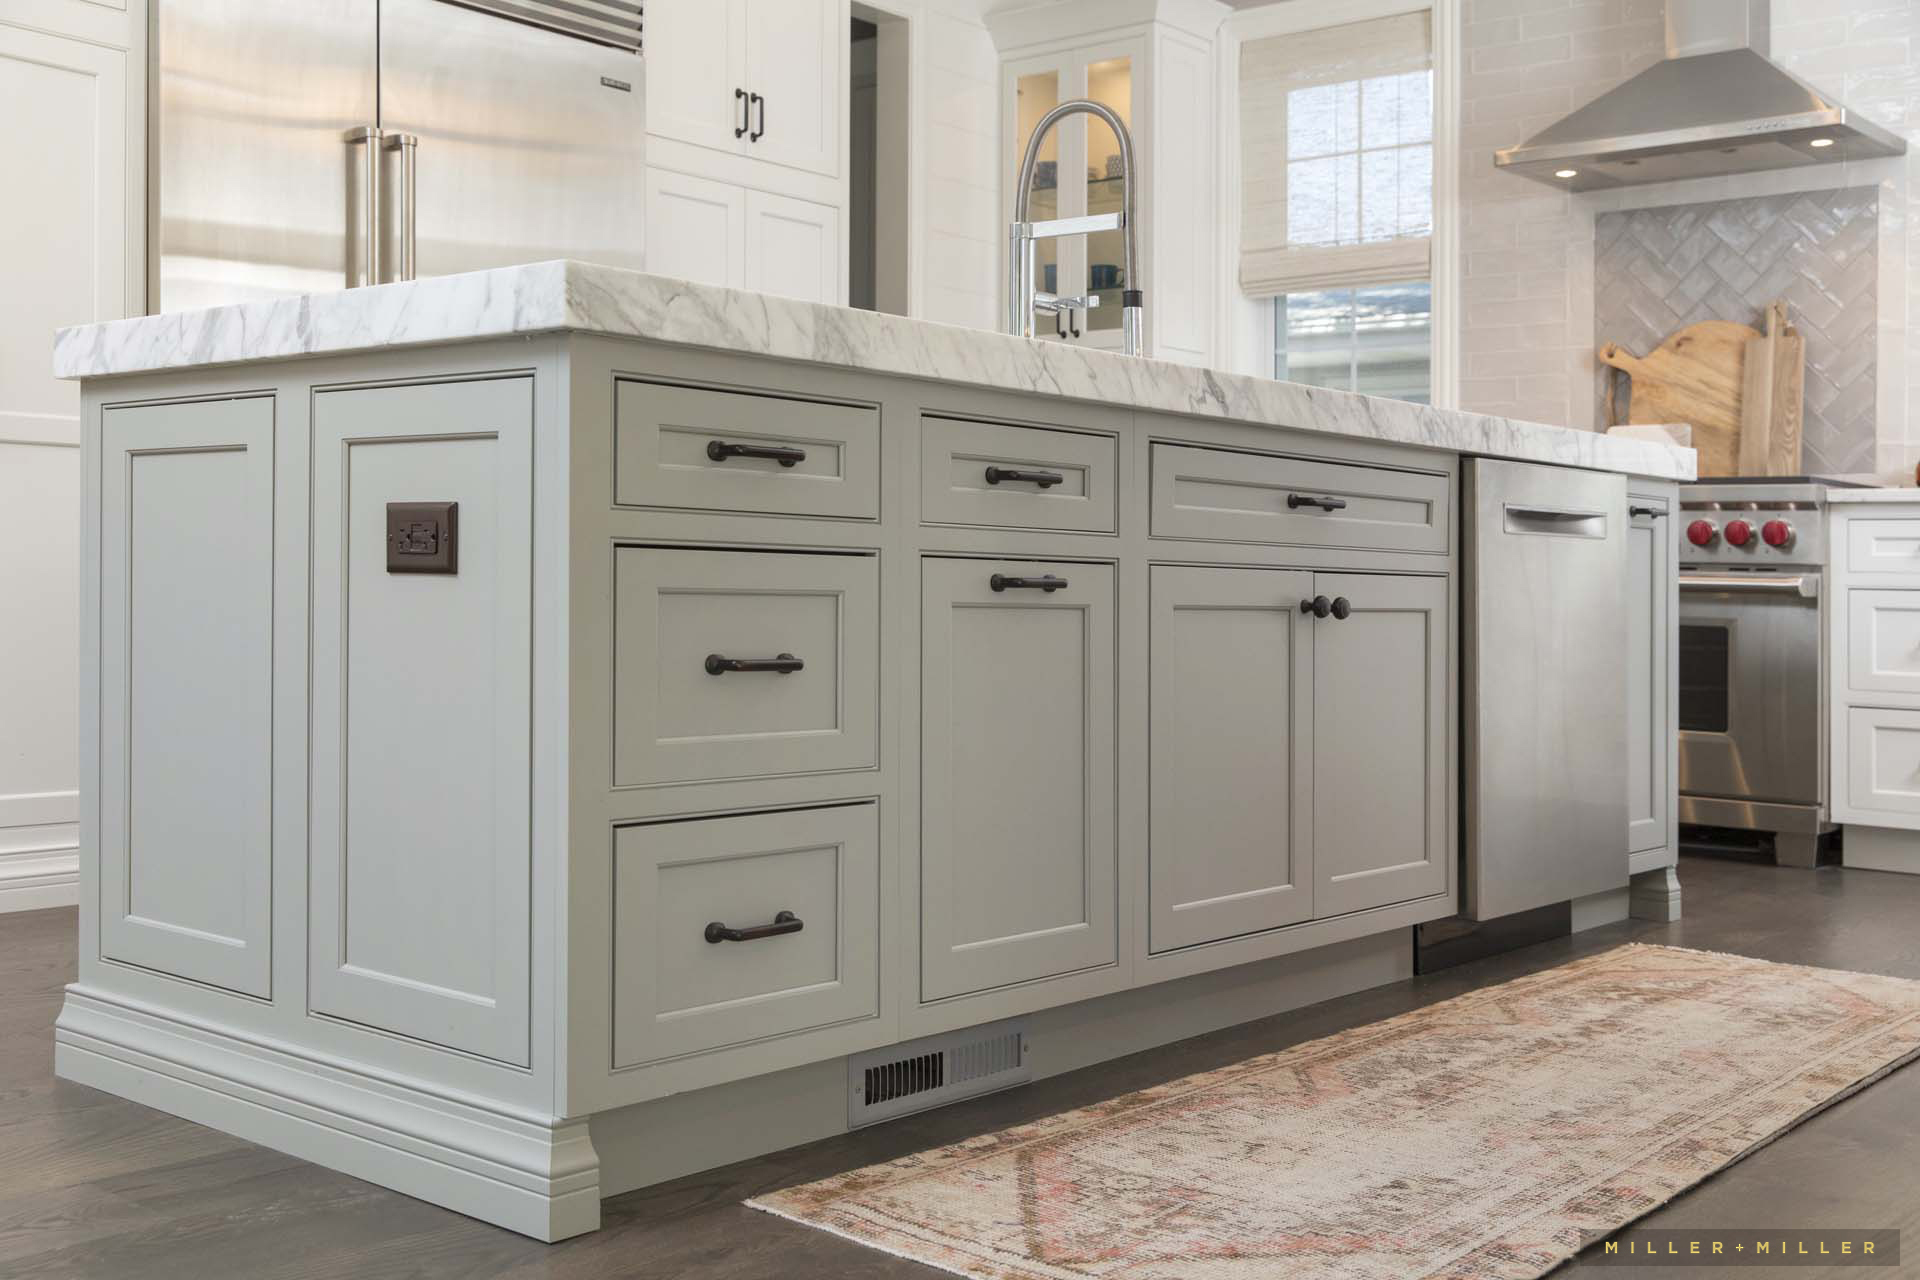 custom-home-kitchen-island